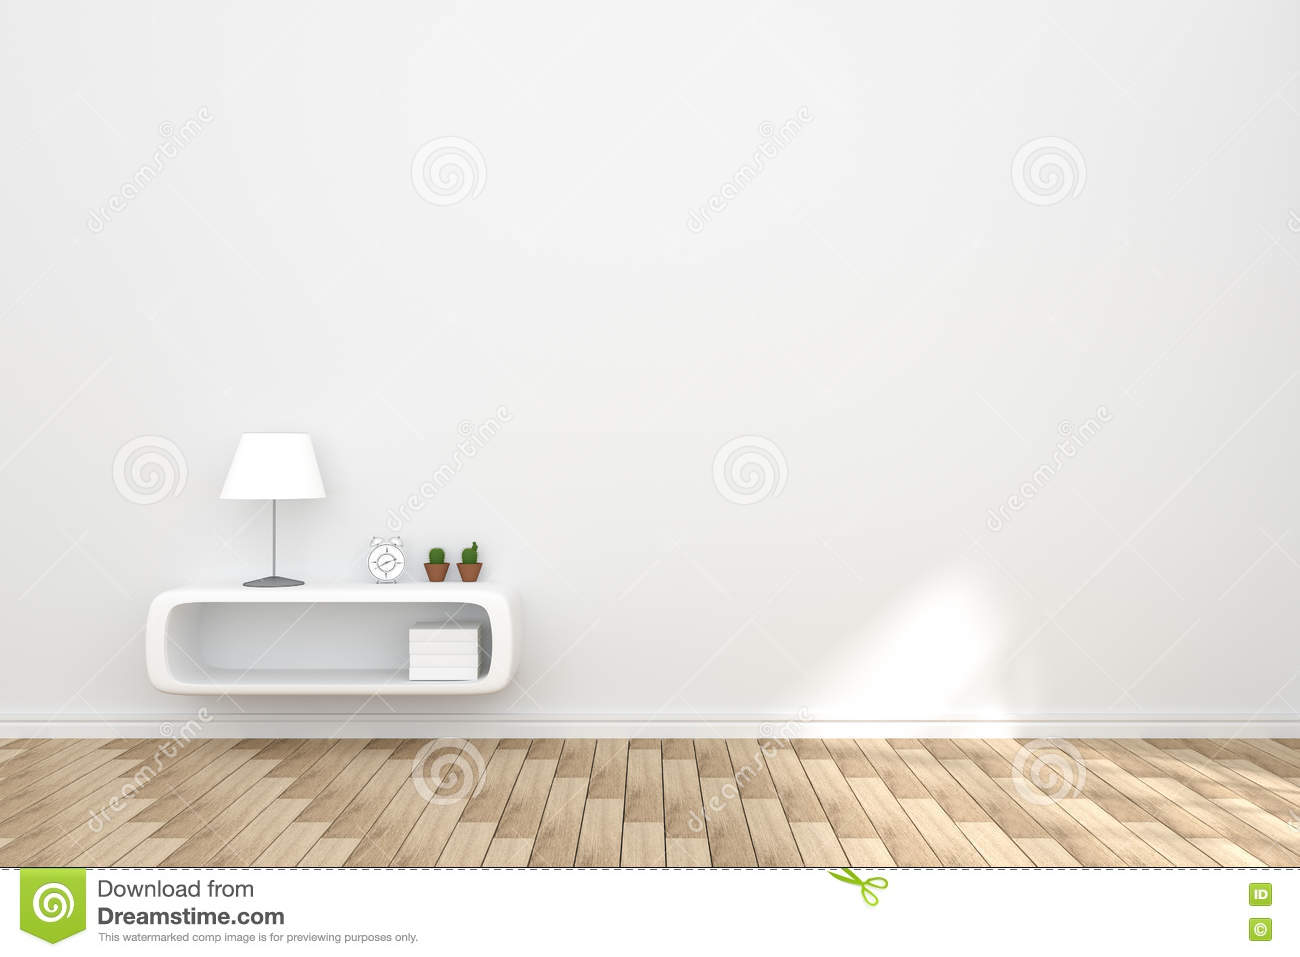 3D Rendering Illustration Of Cozy Living Room Interior With White Book Shelf Against Matt Wall And Wooden Floor